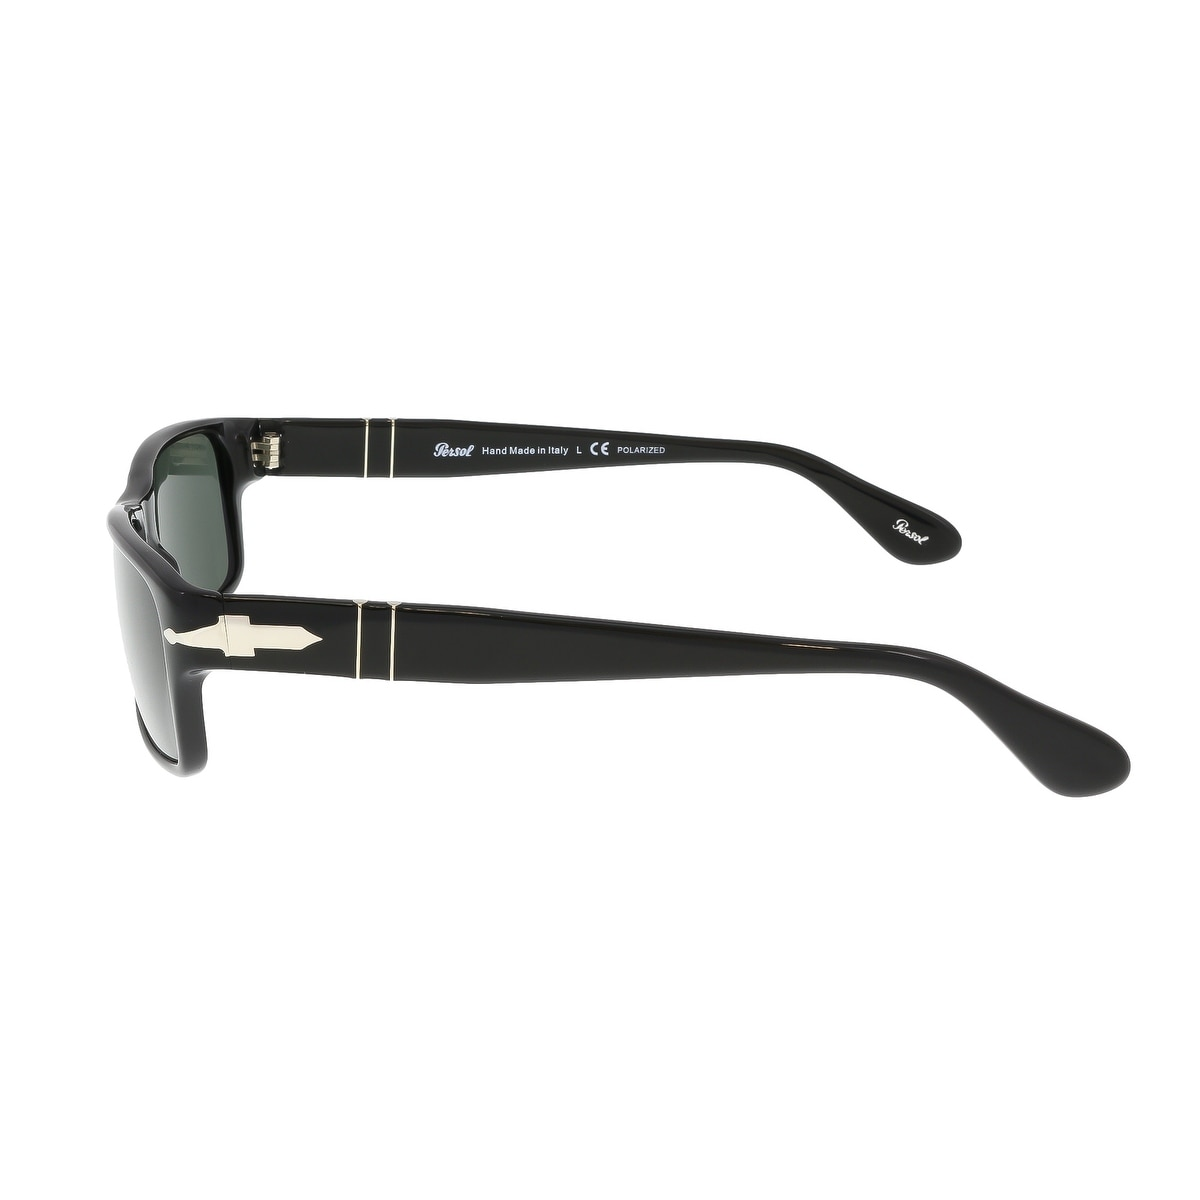 32f1285feb Shop Persol PO2747S 95 48 Black Rectangle Sunglasses - 57-16-140 - Free  Shipping Today - Overstock - 17646142